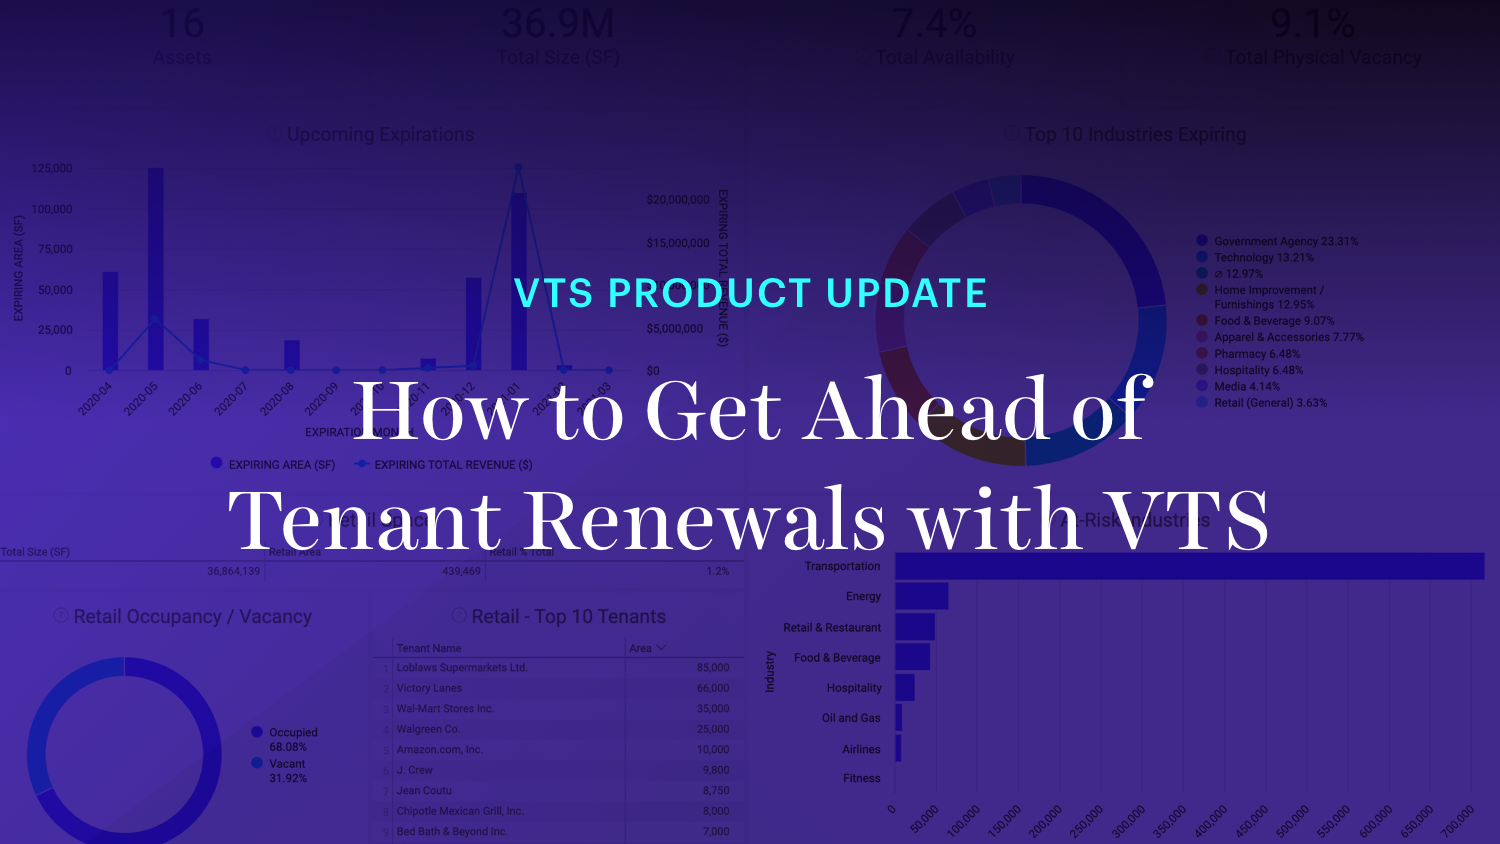 How to Get Ahead of Tenant Renewals with VTS